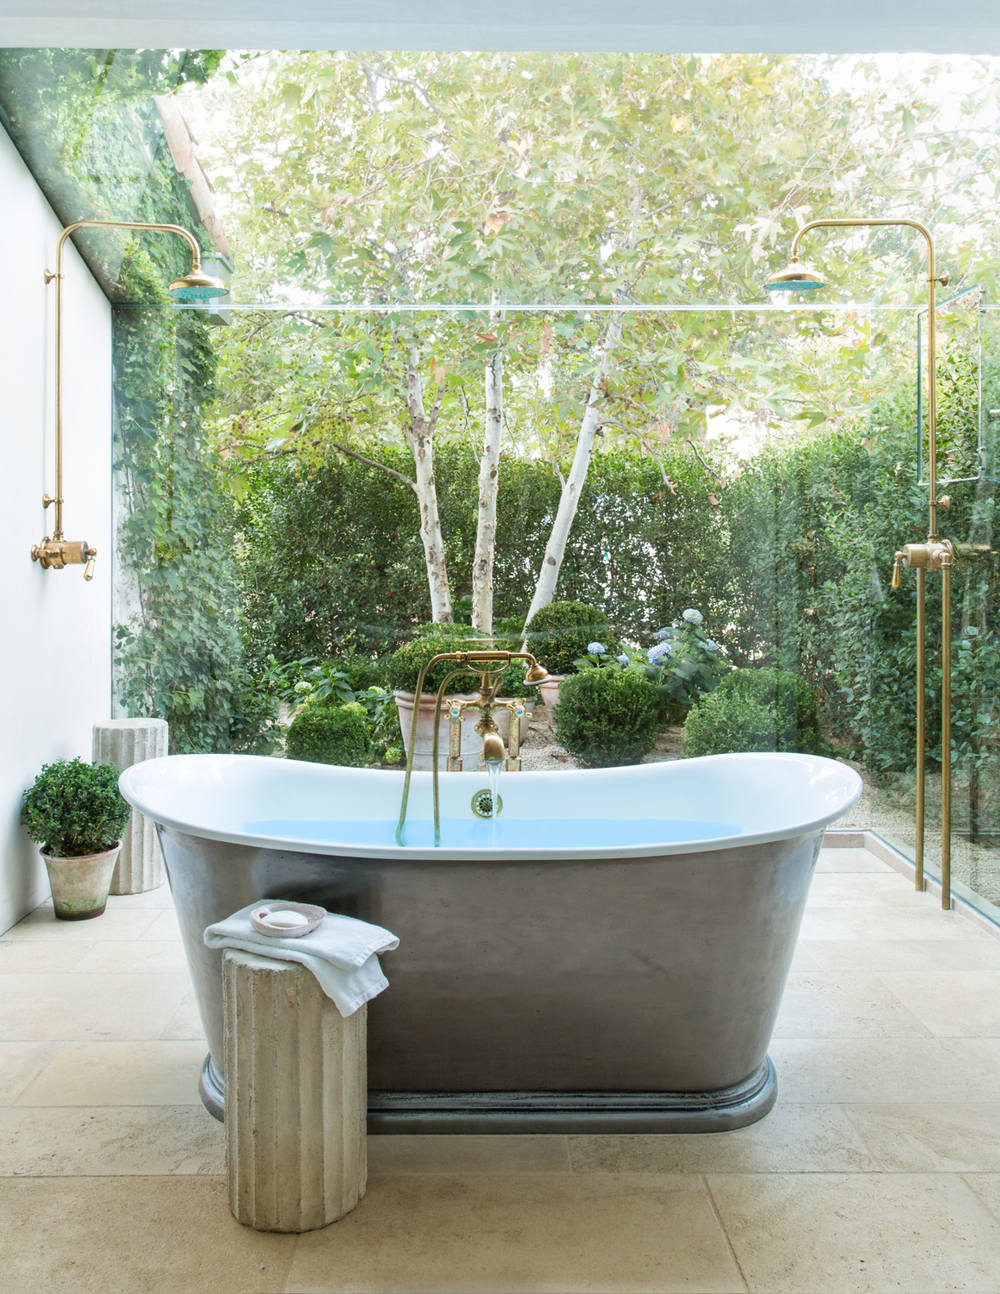 copper-tub-garden-MasterBathroom-view